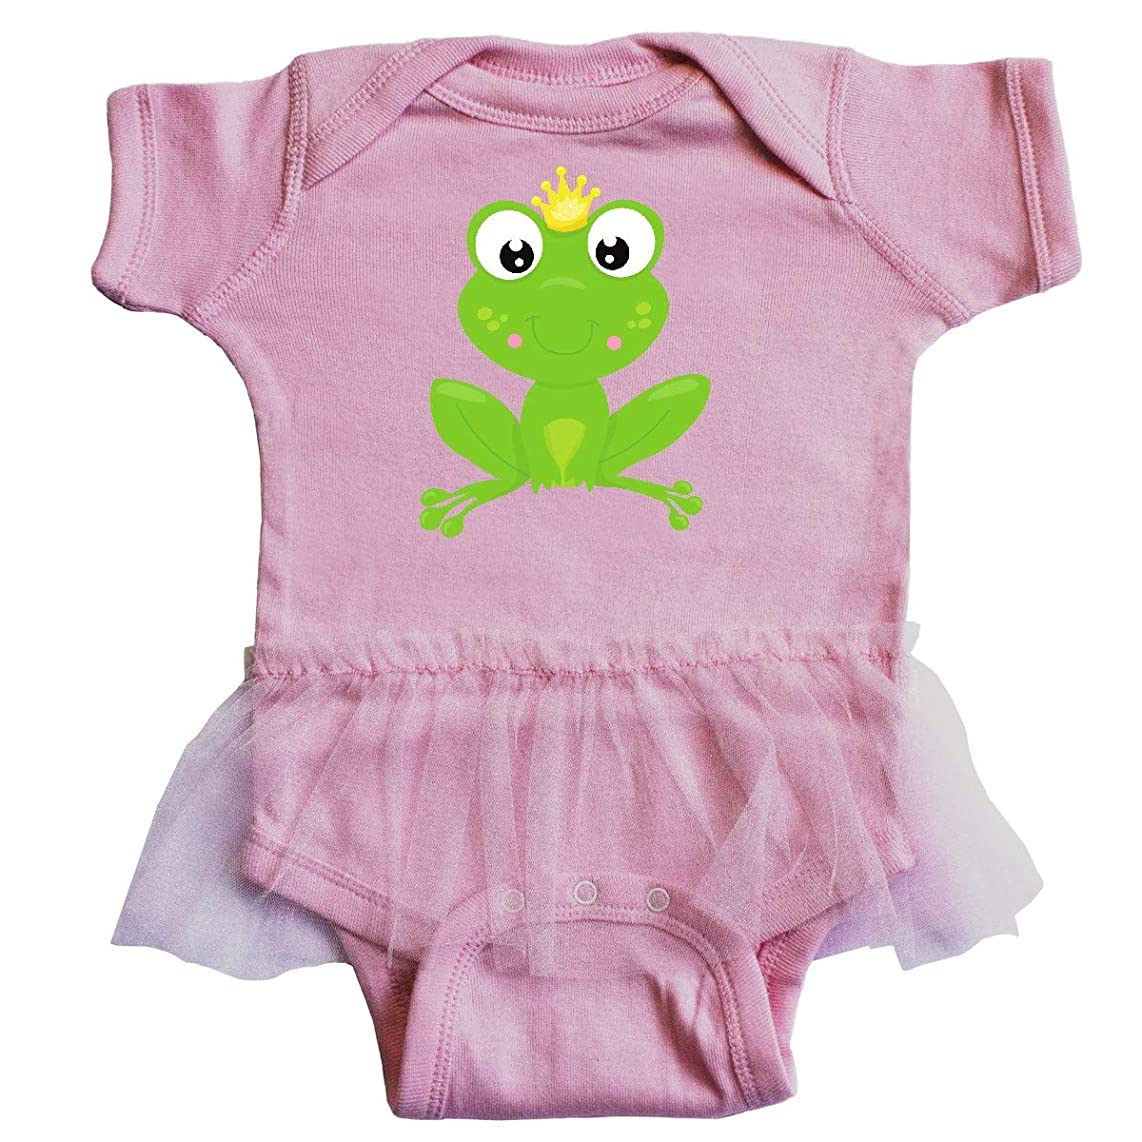 inktastic - Frog Prince, Cute Frog, Frog with A Crown Infant Tutu Bodysuit 35a7e